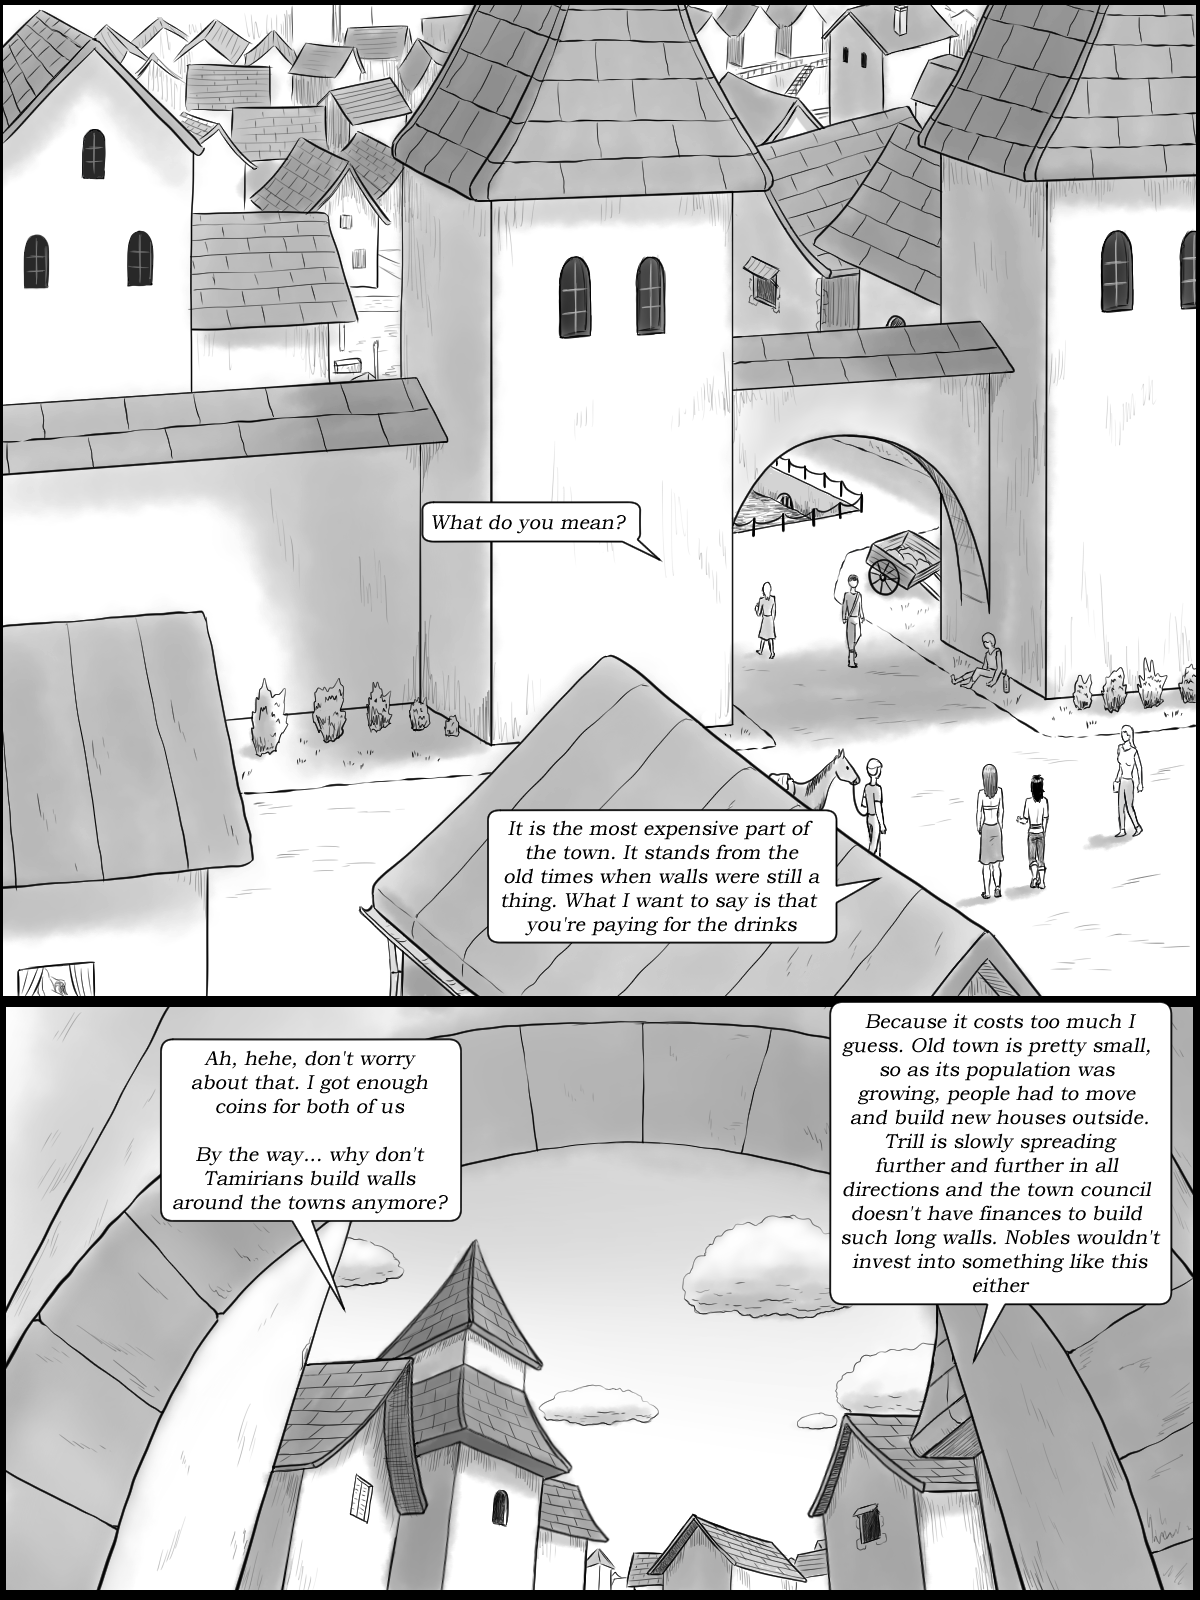 Page 28 - Old town of Trill